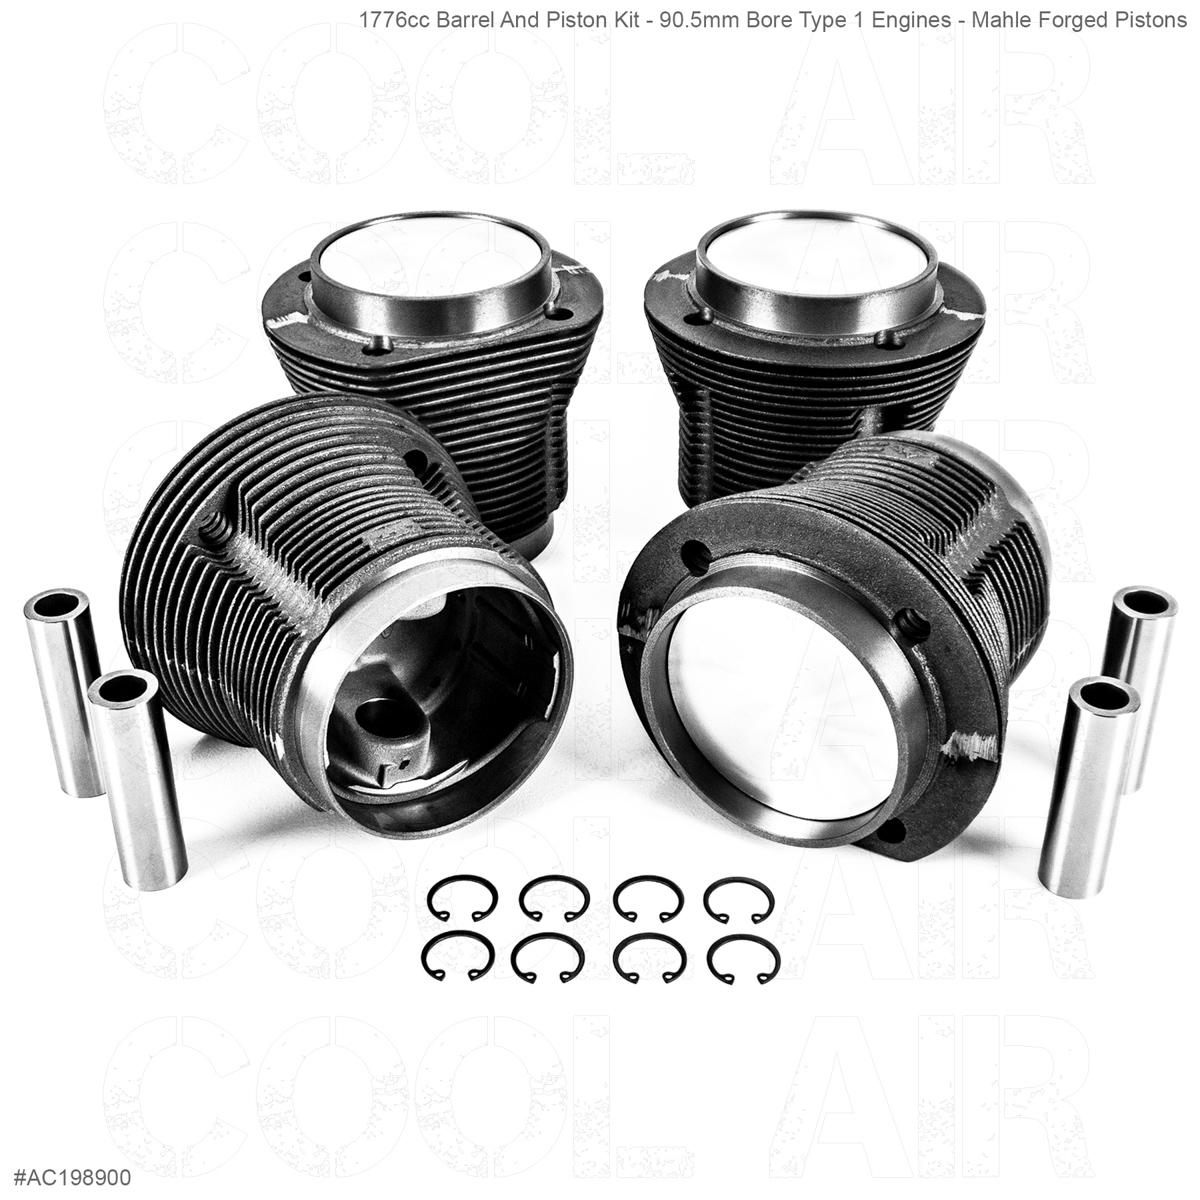 1776cc Barrel And Piston Kit - 90.5mm Bore Type 1 Engines - Mahle Forged Pistons